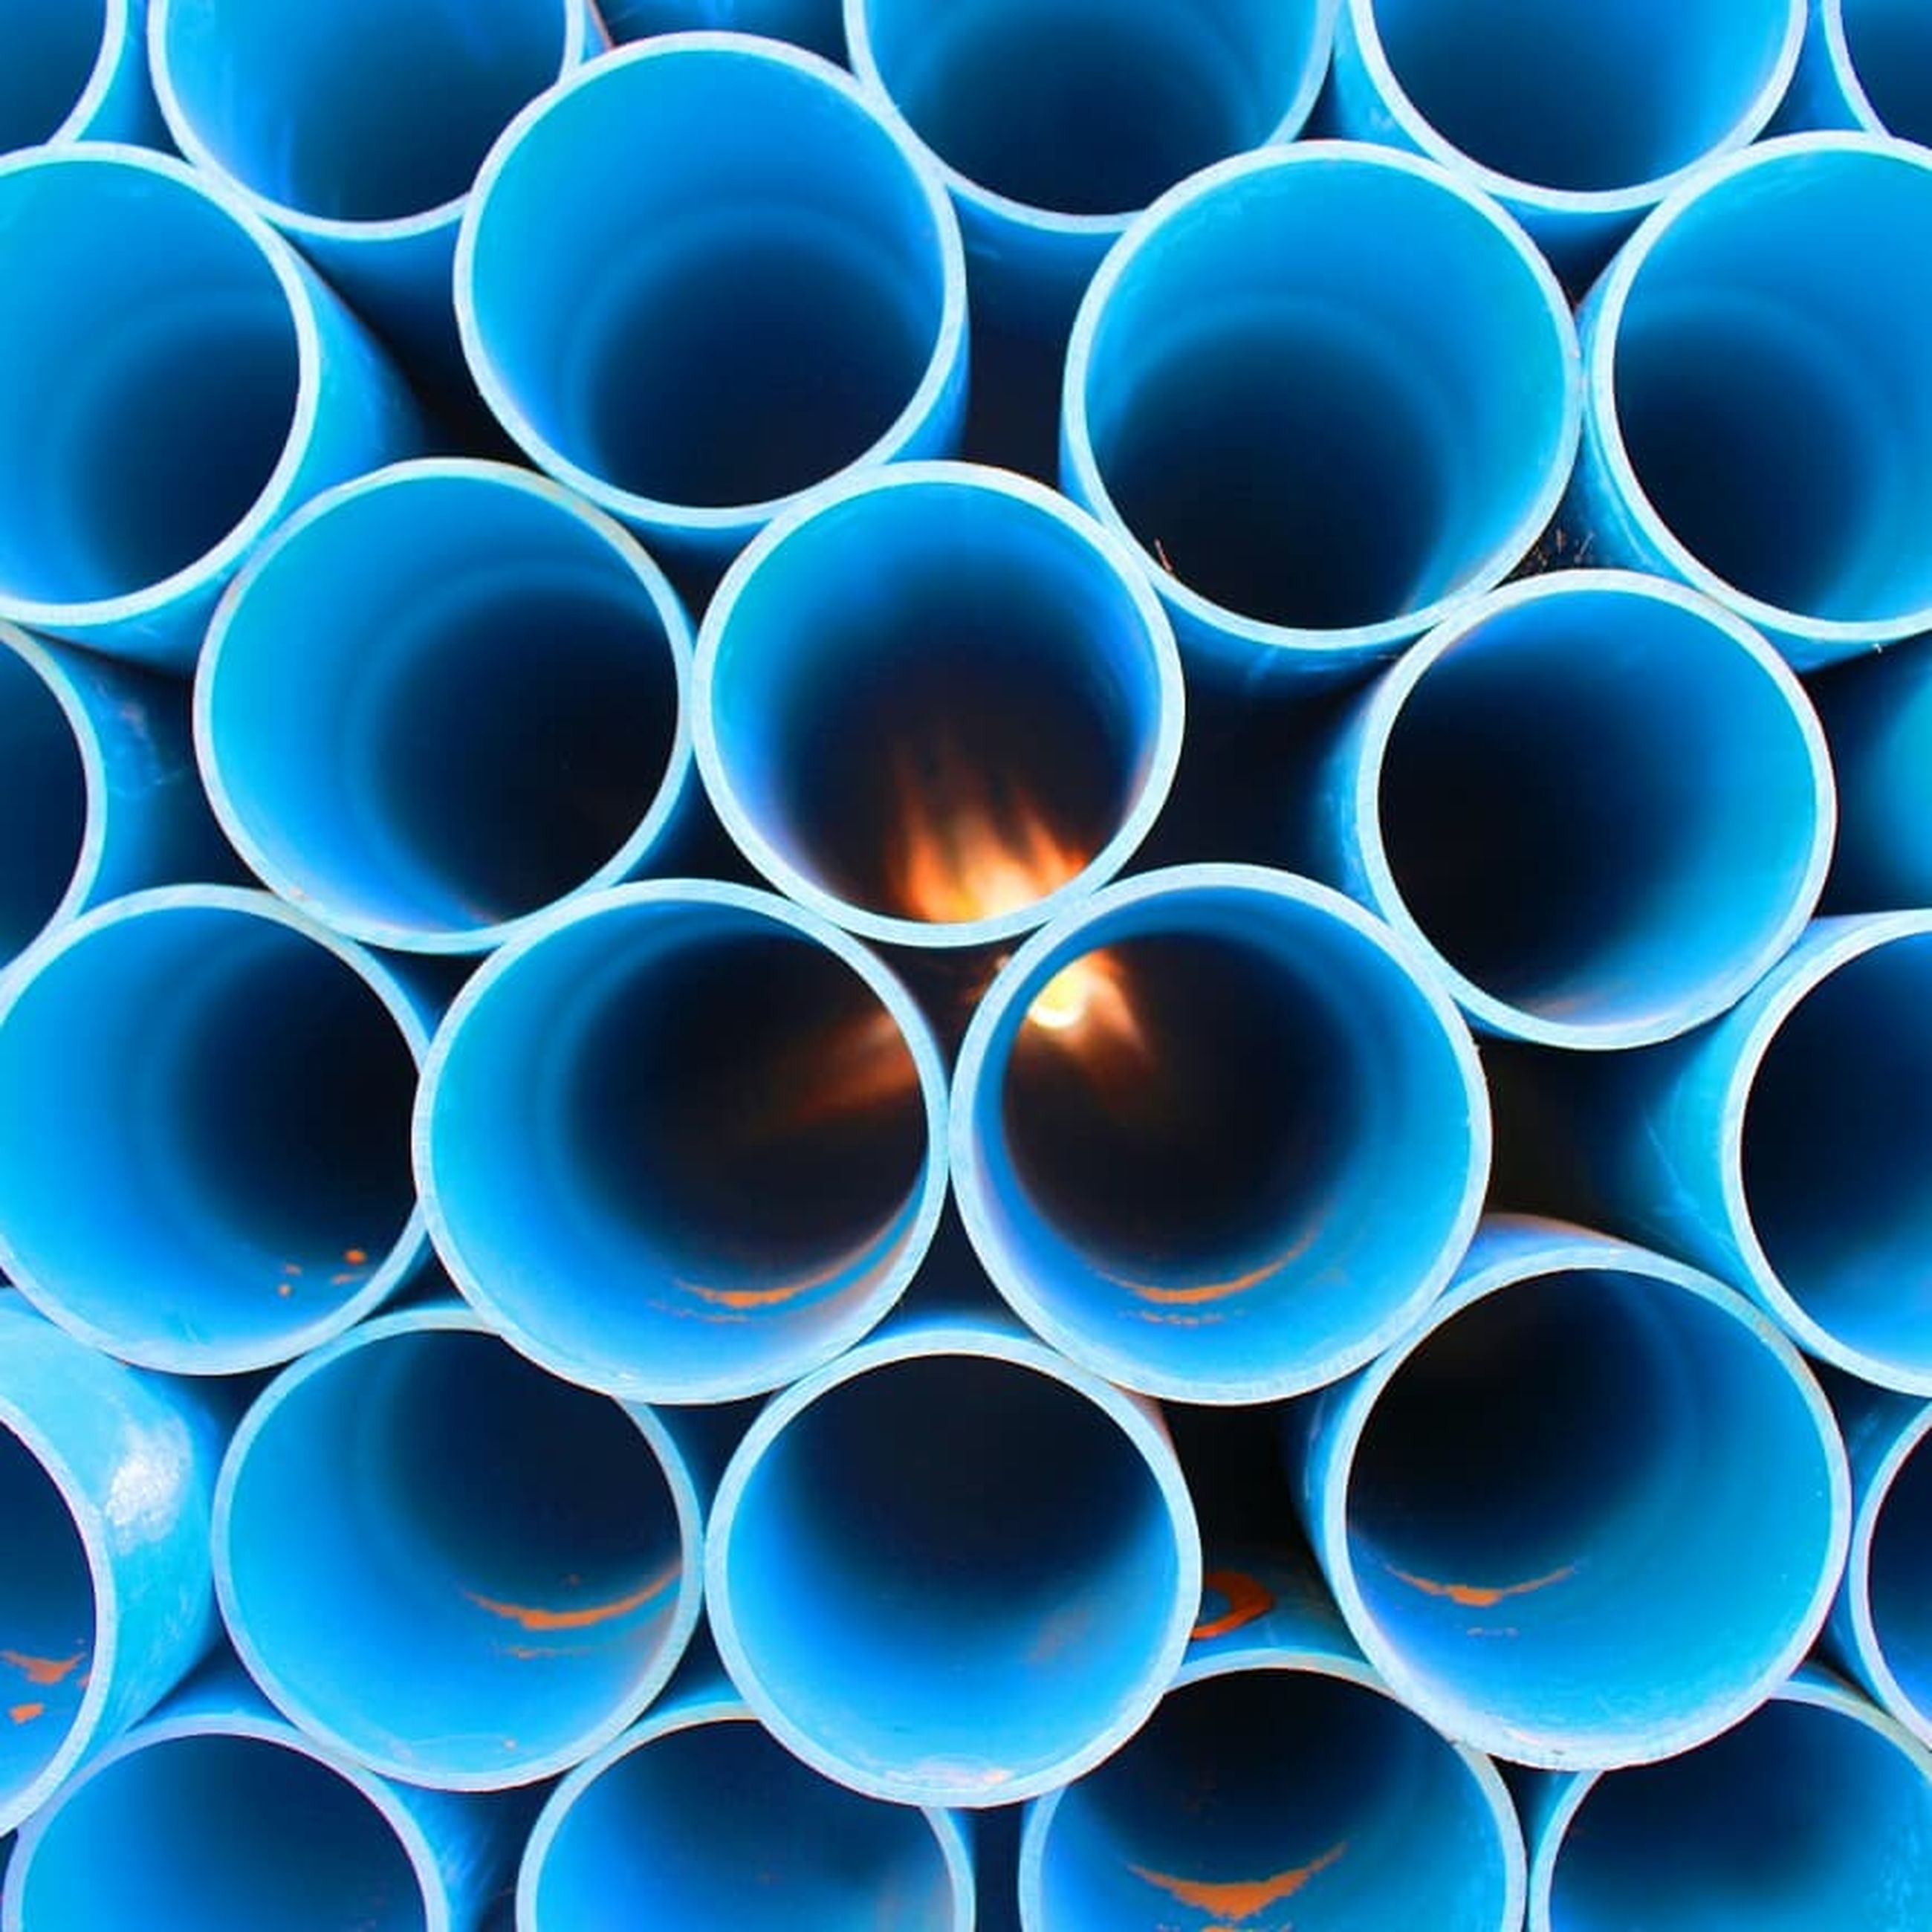 large group of objects, blue, full frame, stack, repetition, backgrounds, shape, geometric shape, circle, no people, in a row, abundance, pipe - tube, pattern, industry, order, tube, cylinder, indoors, blue background